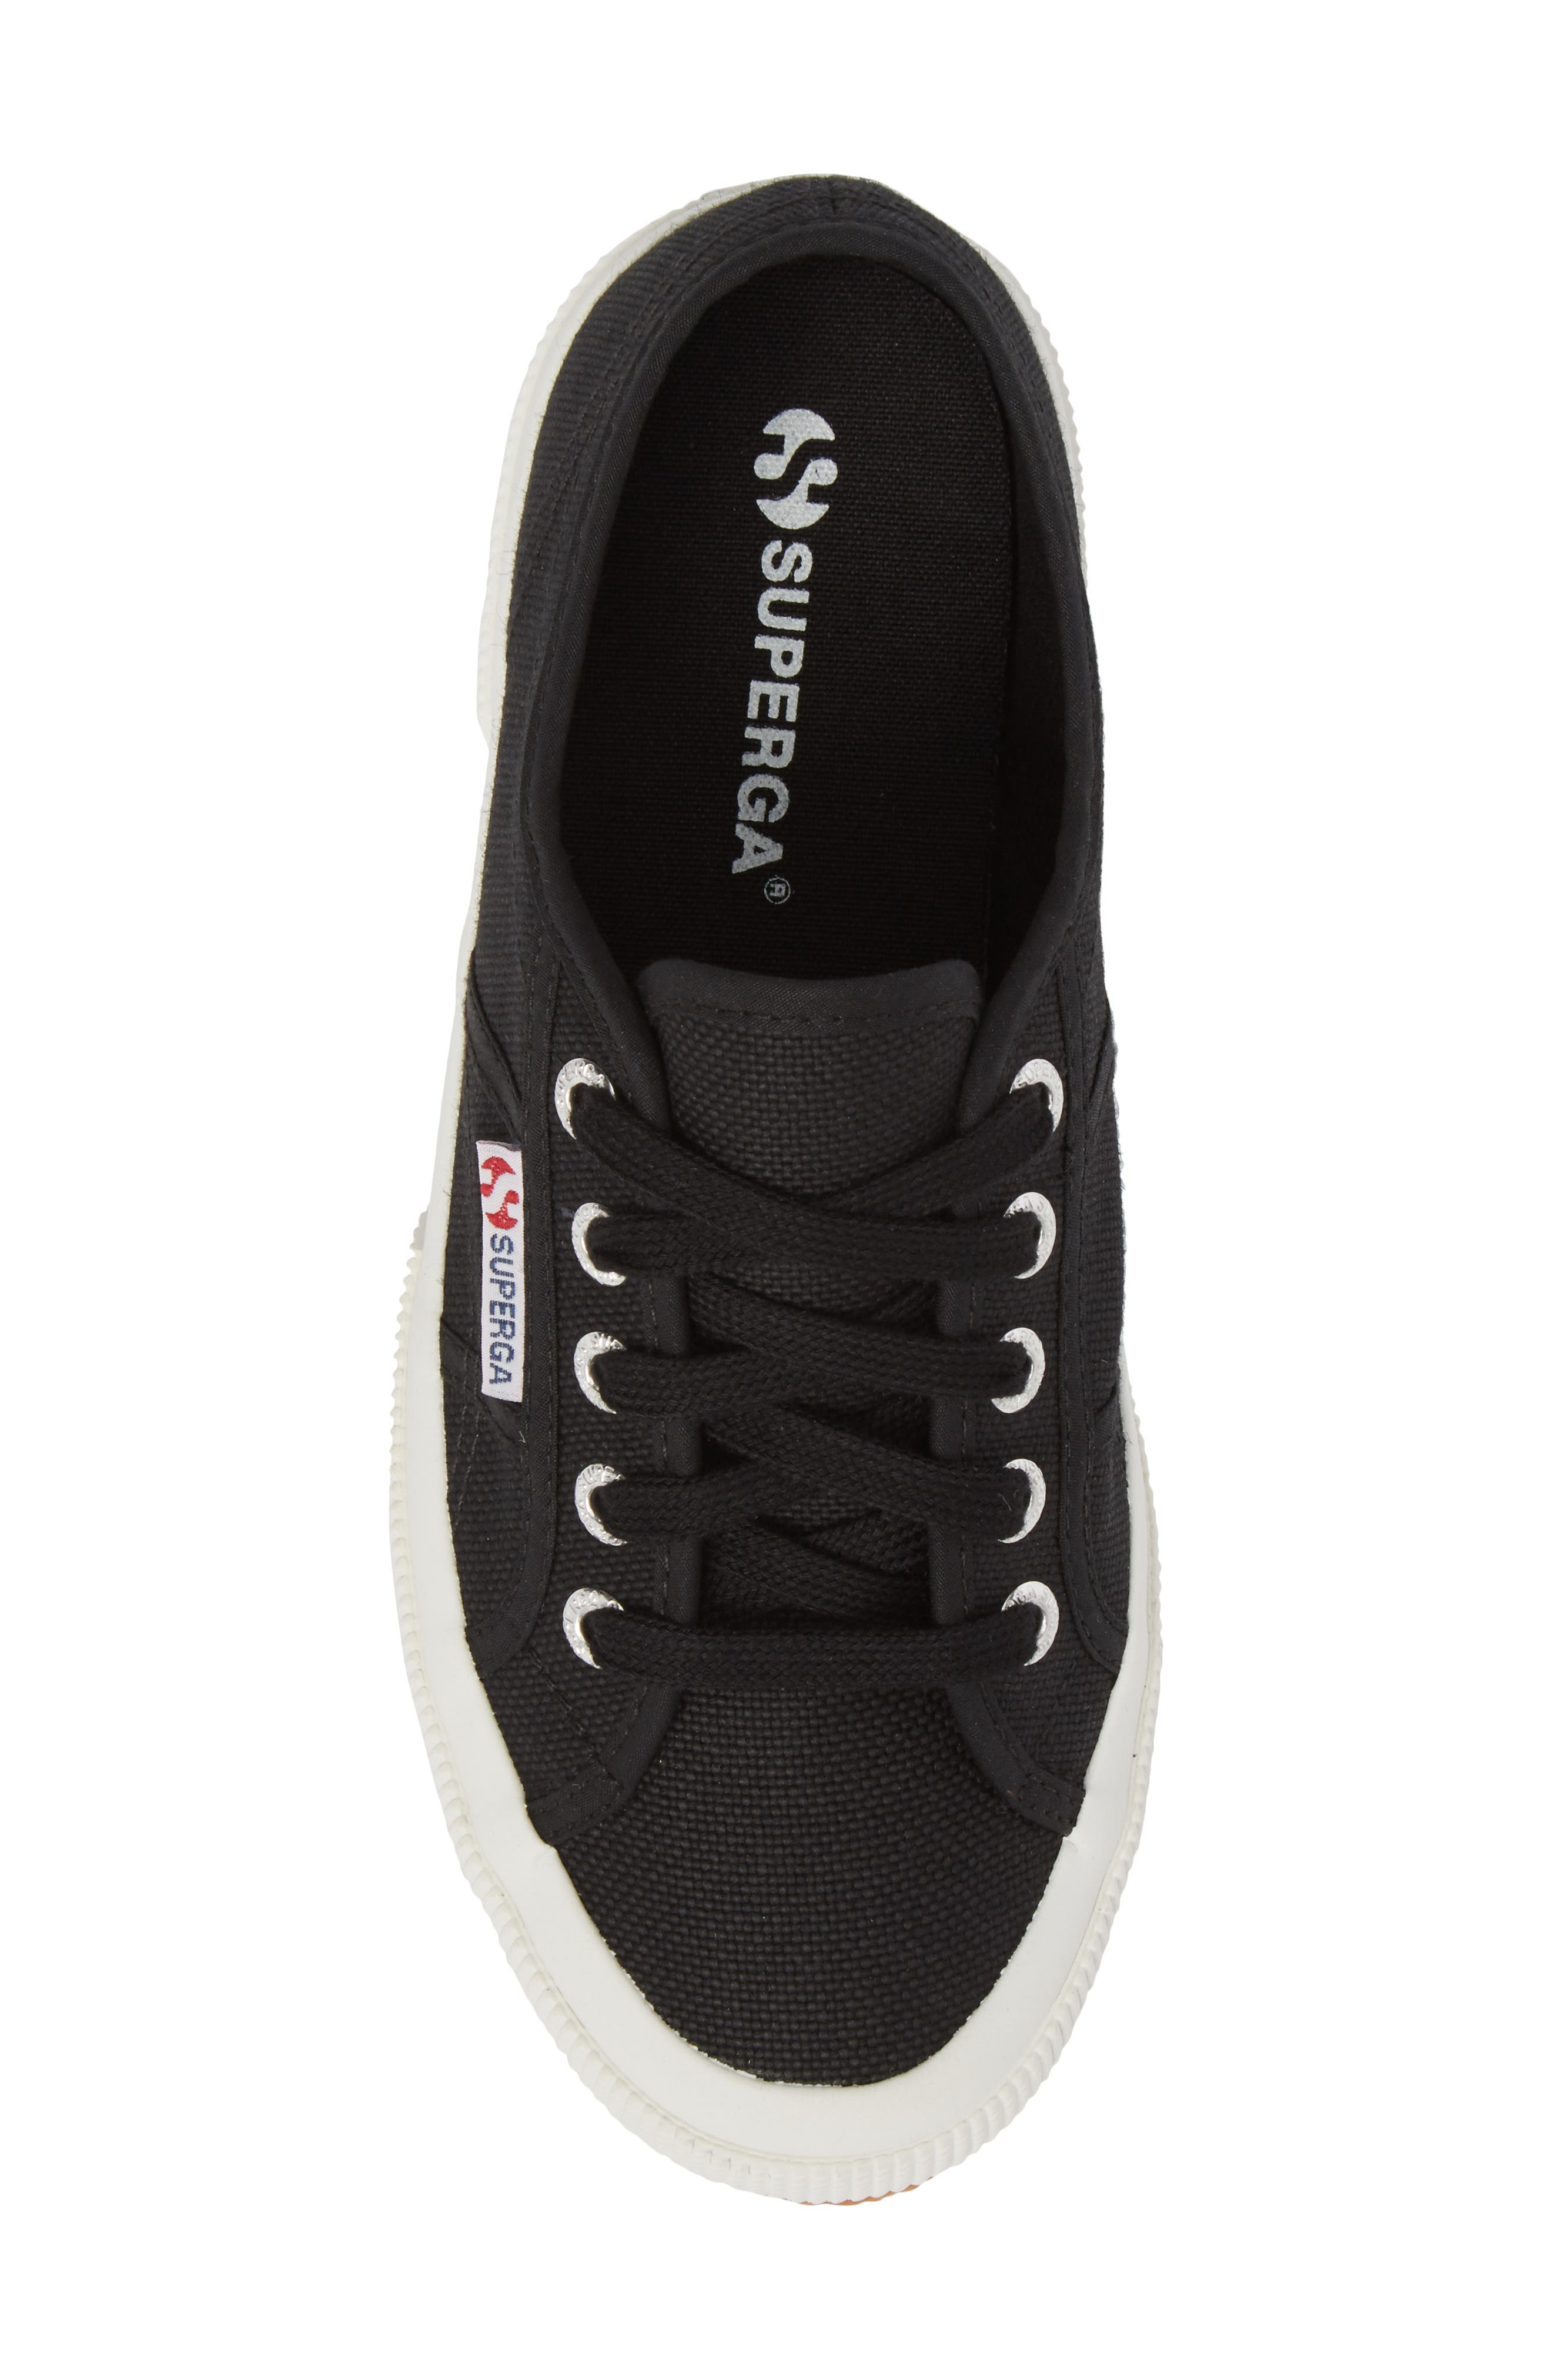 'Cotu' Sneaker,                             Alternate thumbnail 5, color,                             BLACK/ BLACK/ WHITE